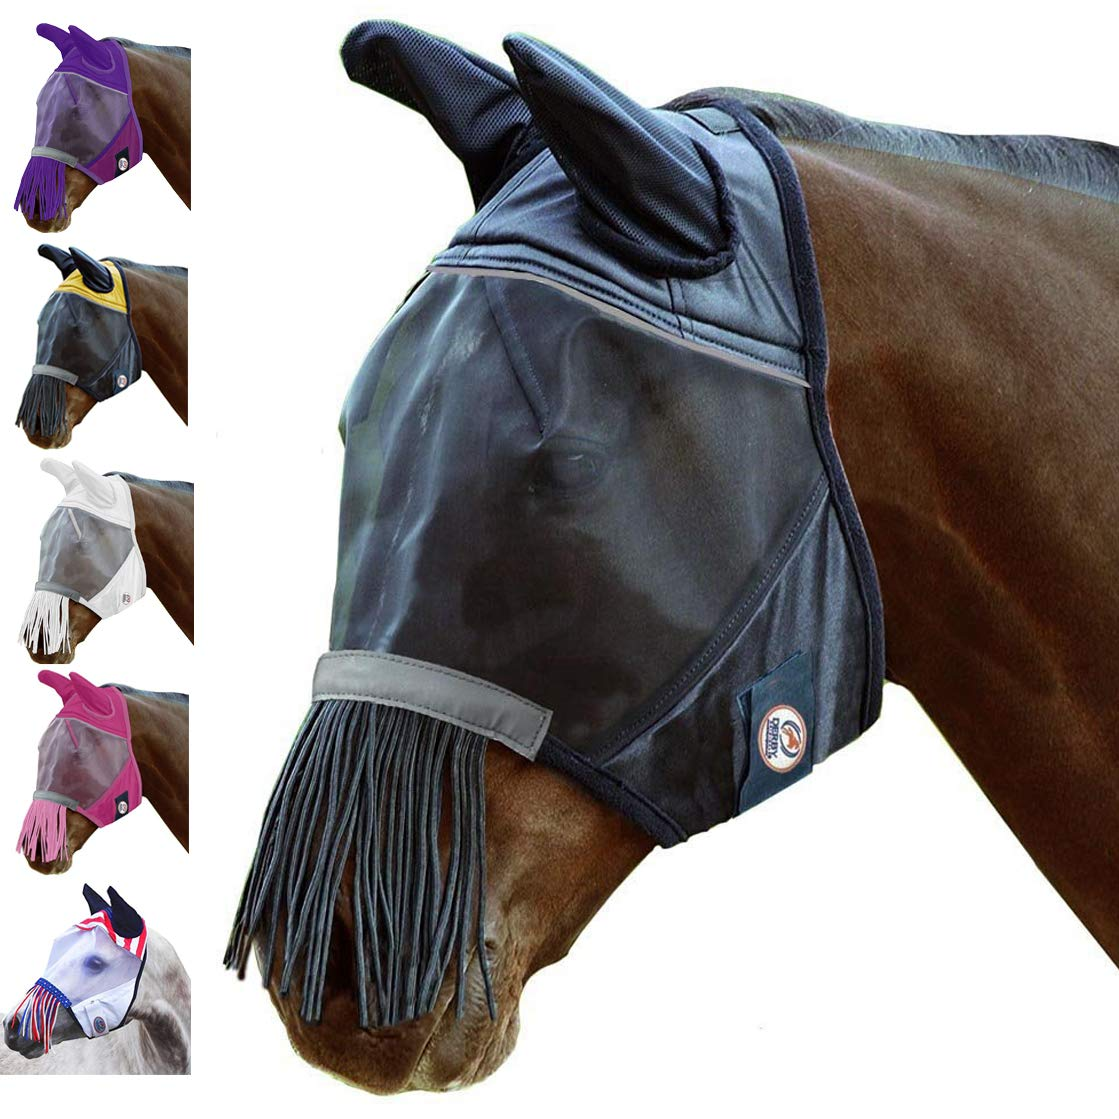 Black Warmblood Black Warmblood Derby Reflective Trim Horse Fly Mask with Ears & Fringes with One Year Warranty (Warmblood, Black)